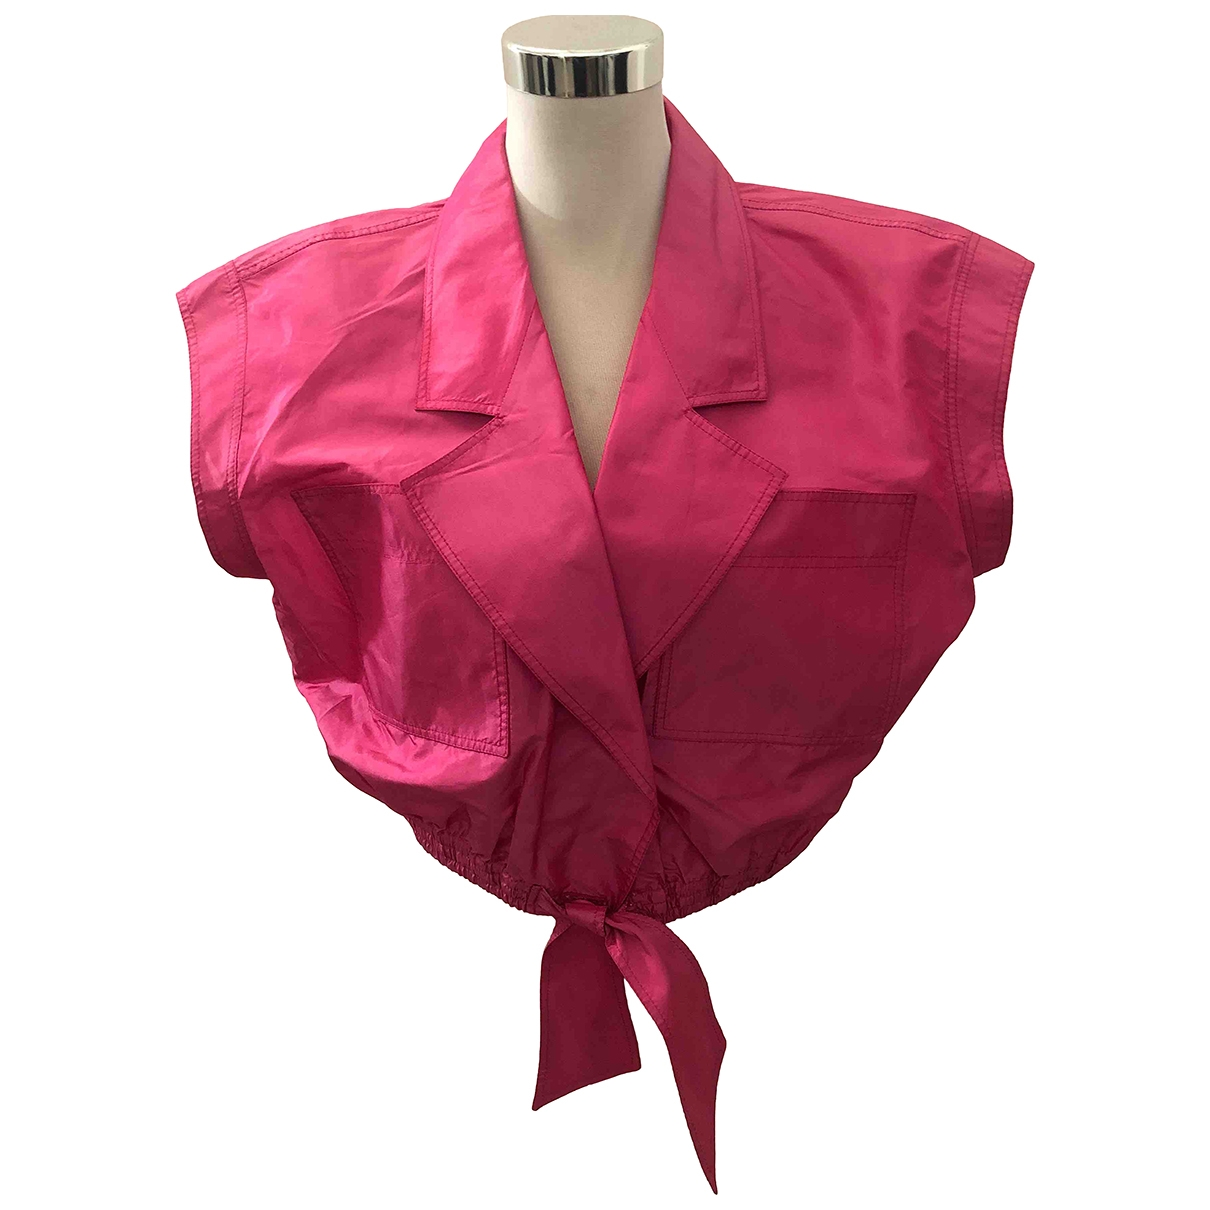 Ungaro Parallele \N Pink  top for Women 44 IT